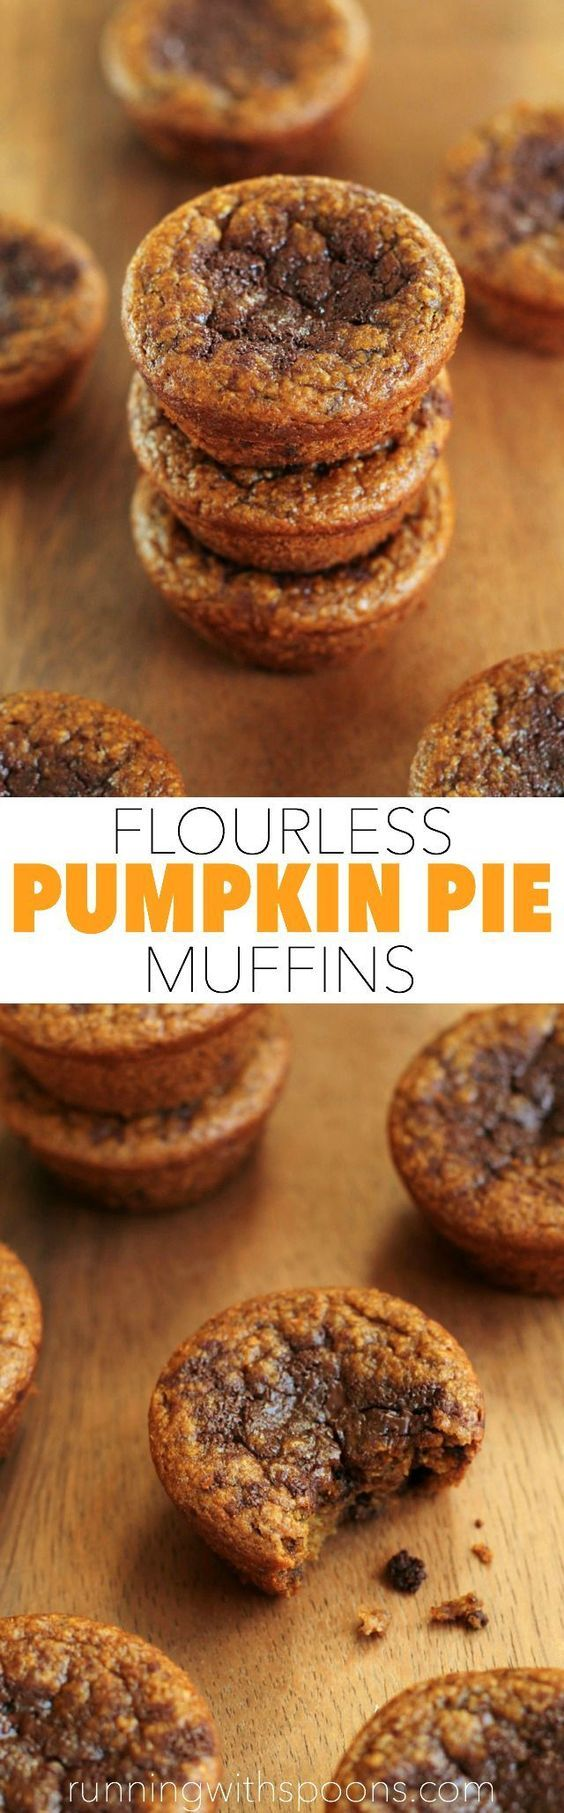 Flourless Pumpkin Pie Muffins -- you won't miss the flour, oil, or sugar in these soft and tender muffins! || runningwithspoons... #glutenfree #pumpkin #muffins